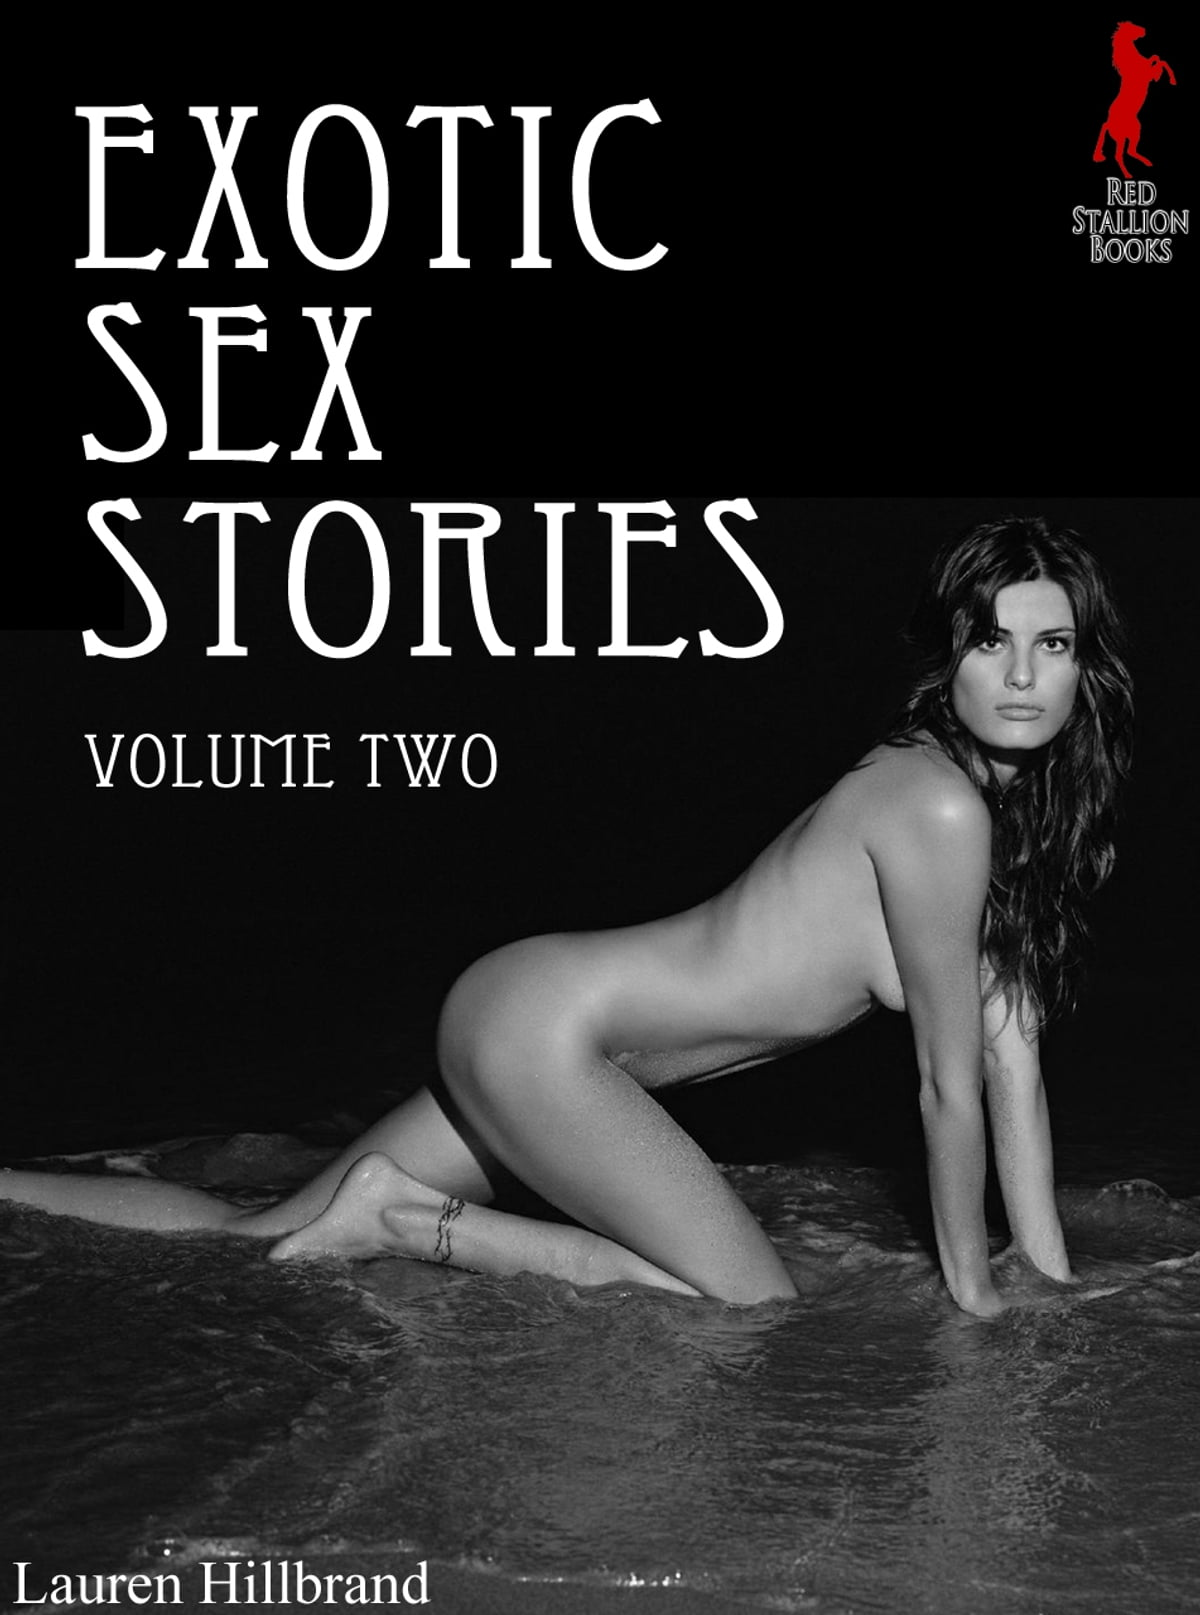 Exotic sex stories read images 622